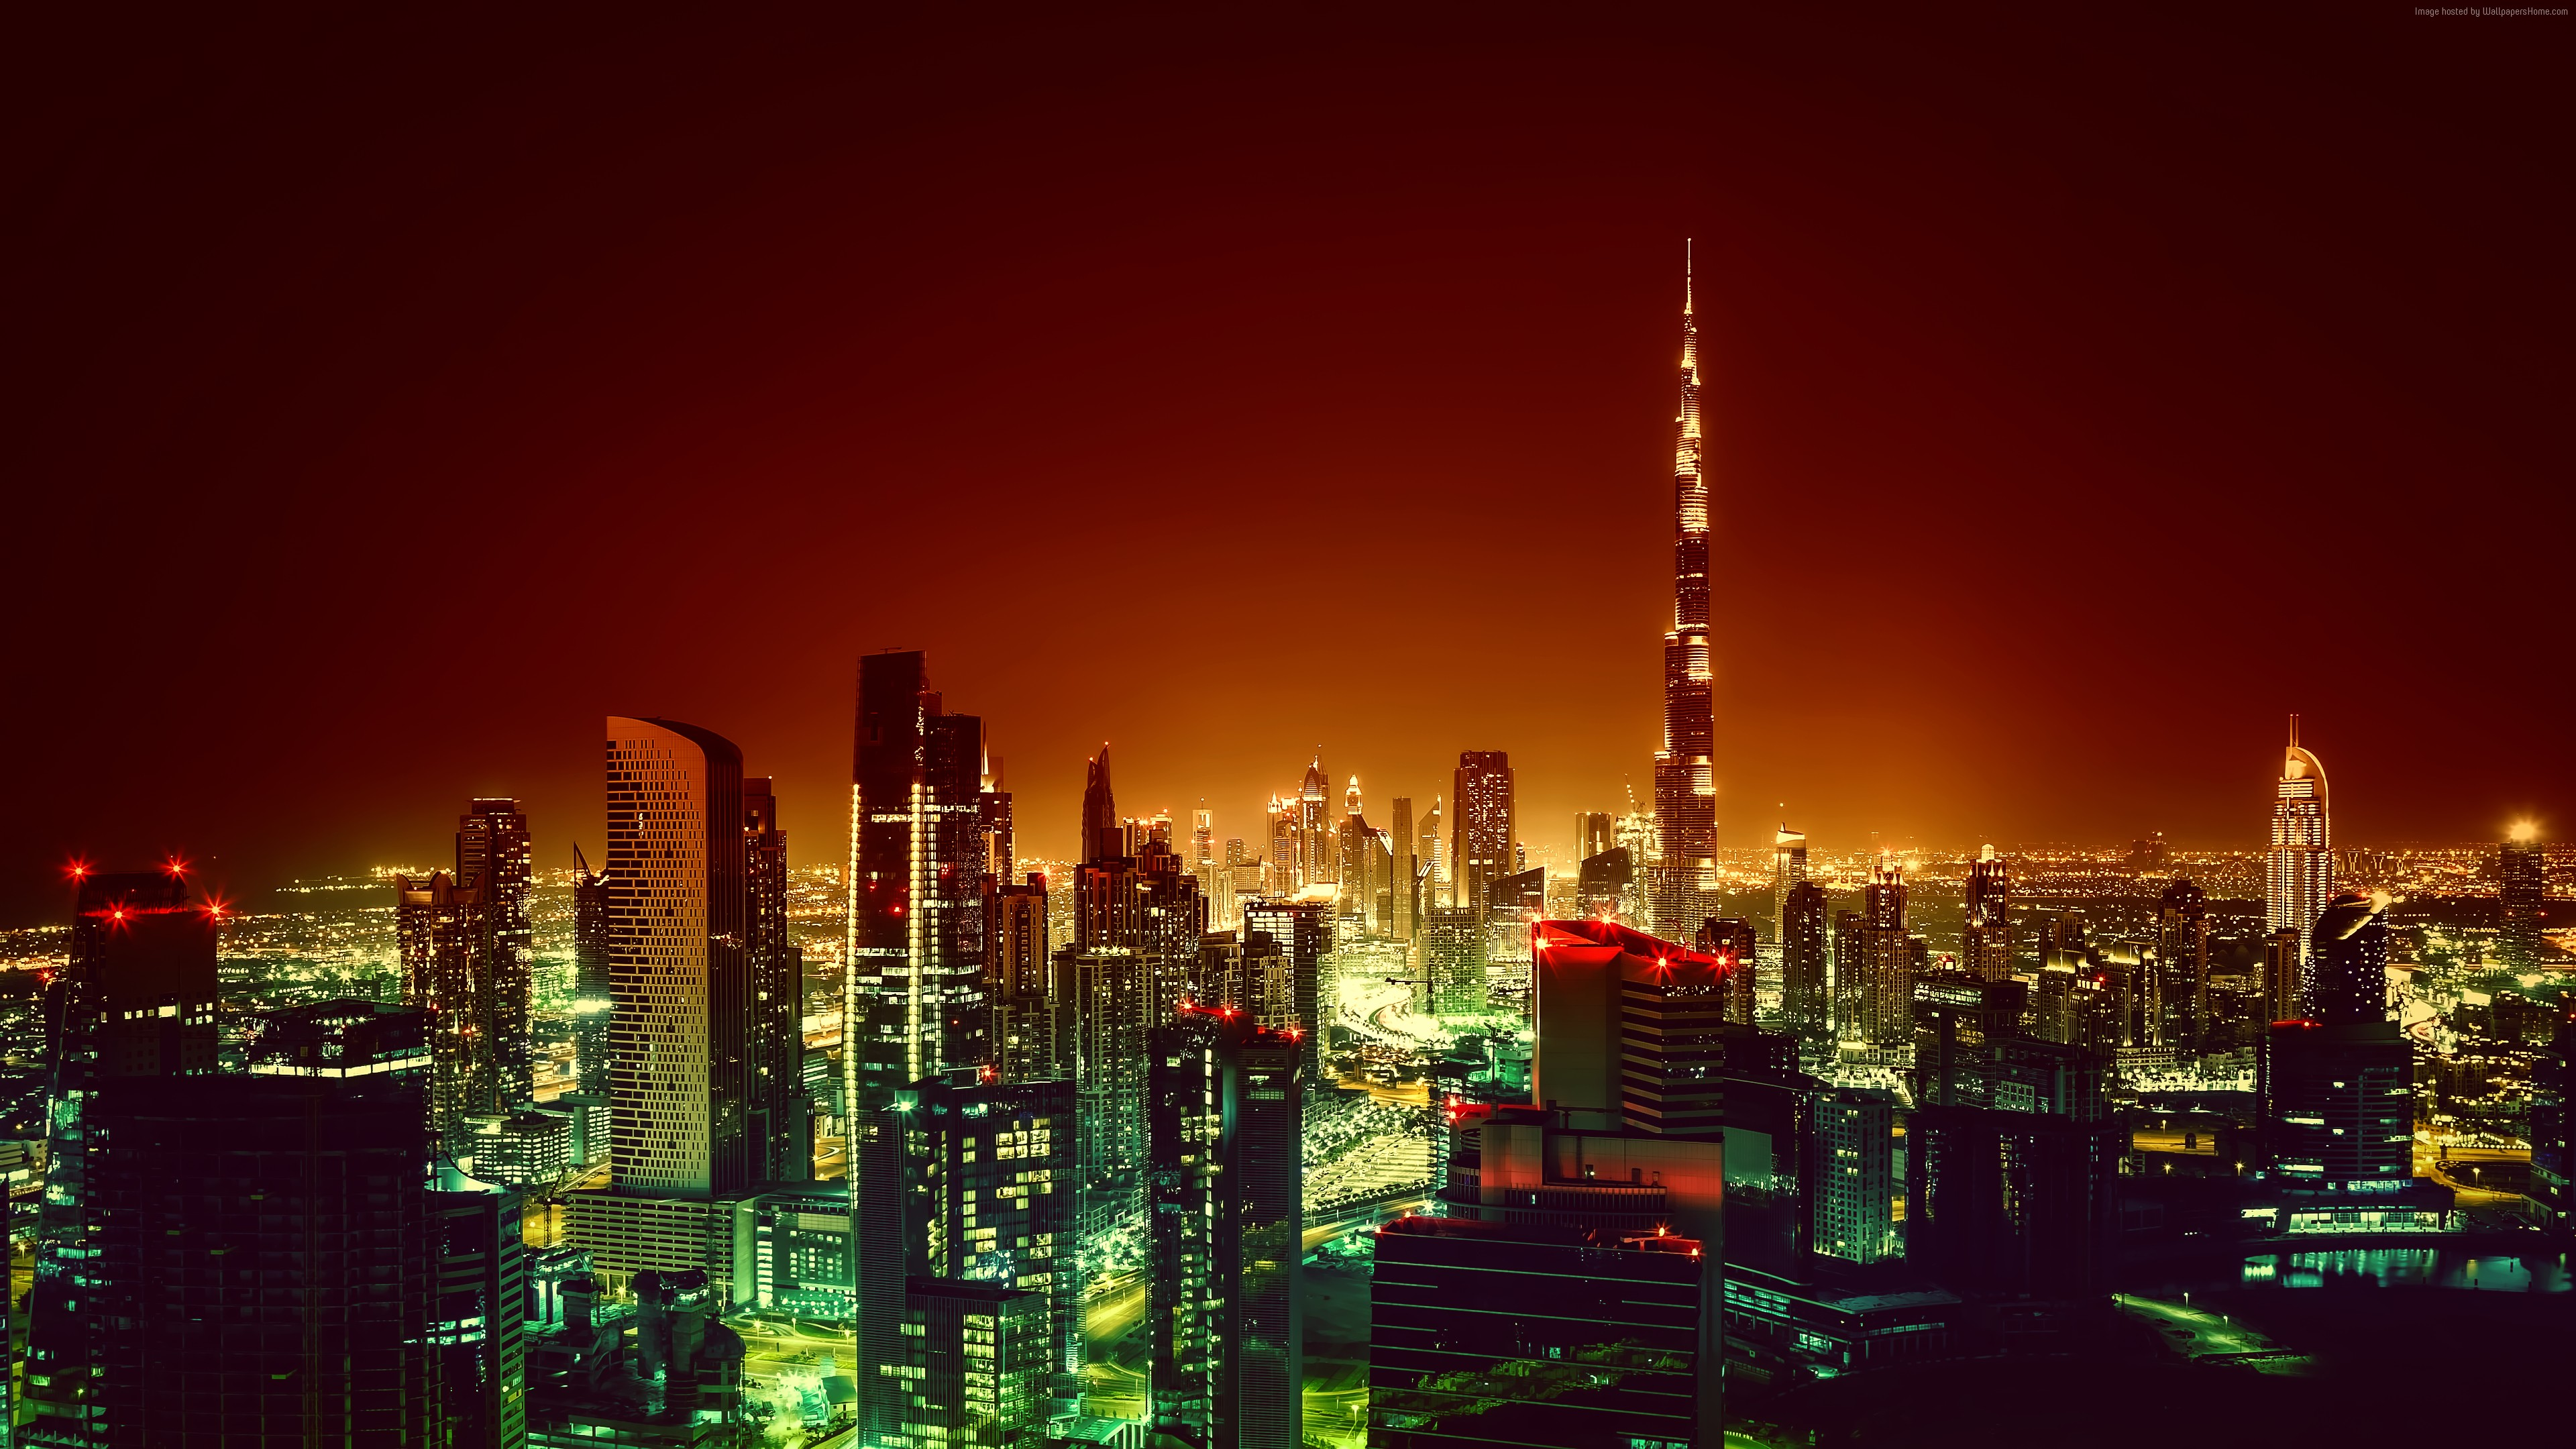 Wallpaper Burj Khalifa, Dubai, Cityscape, Night, 4K, Architecture